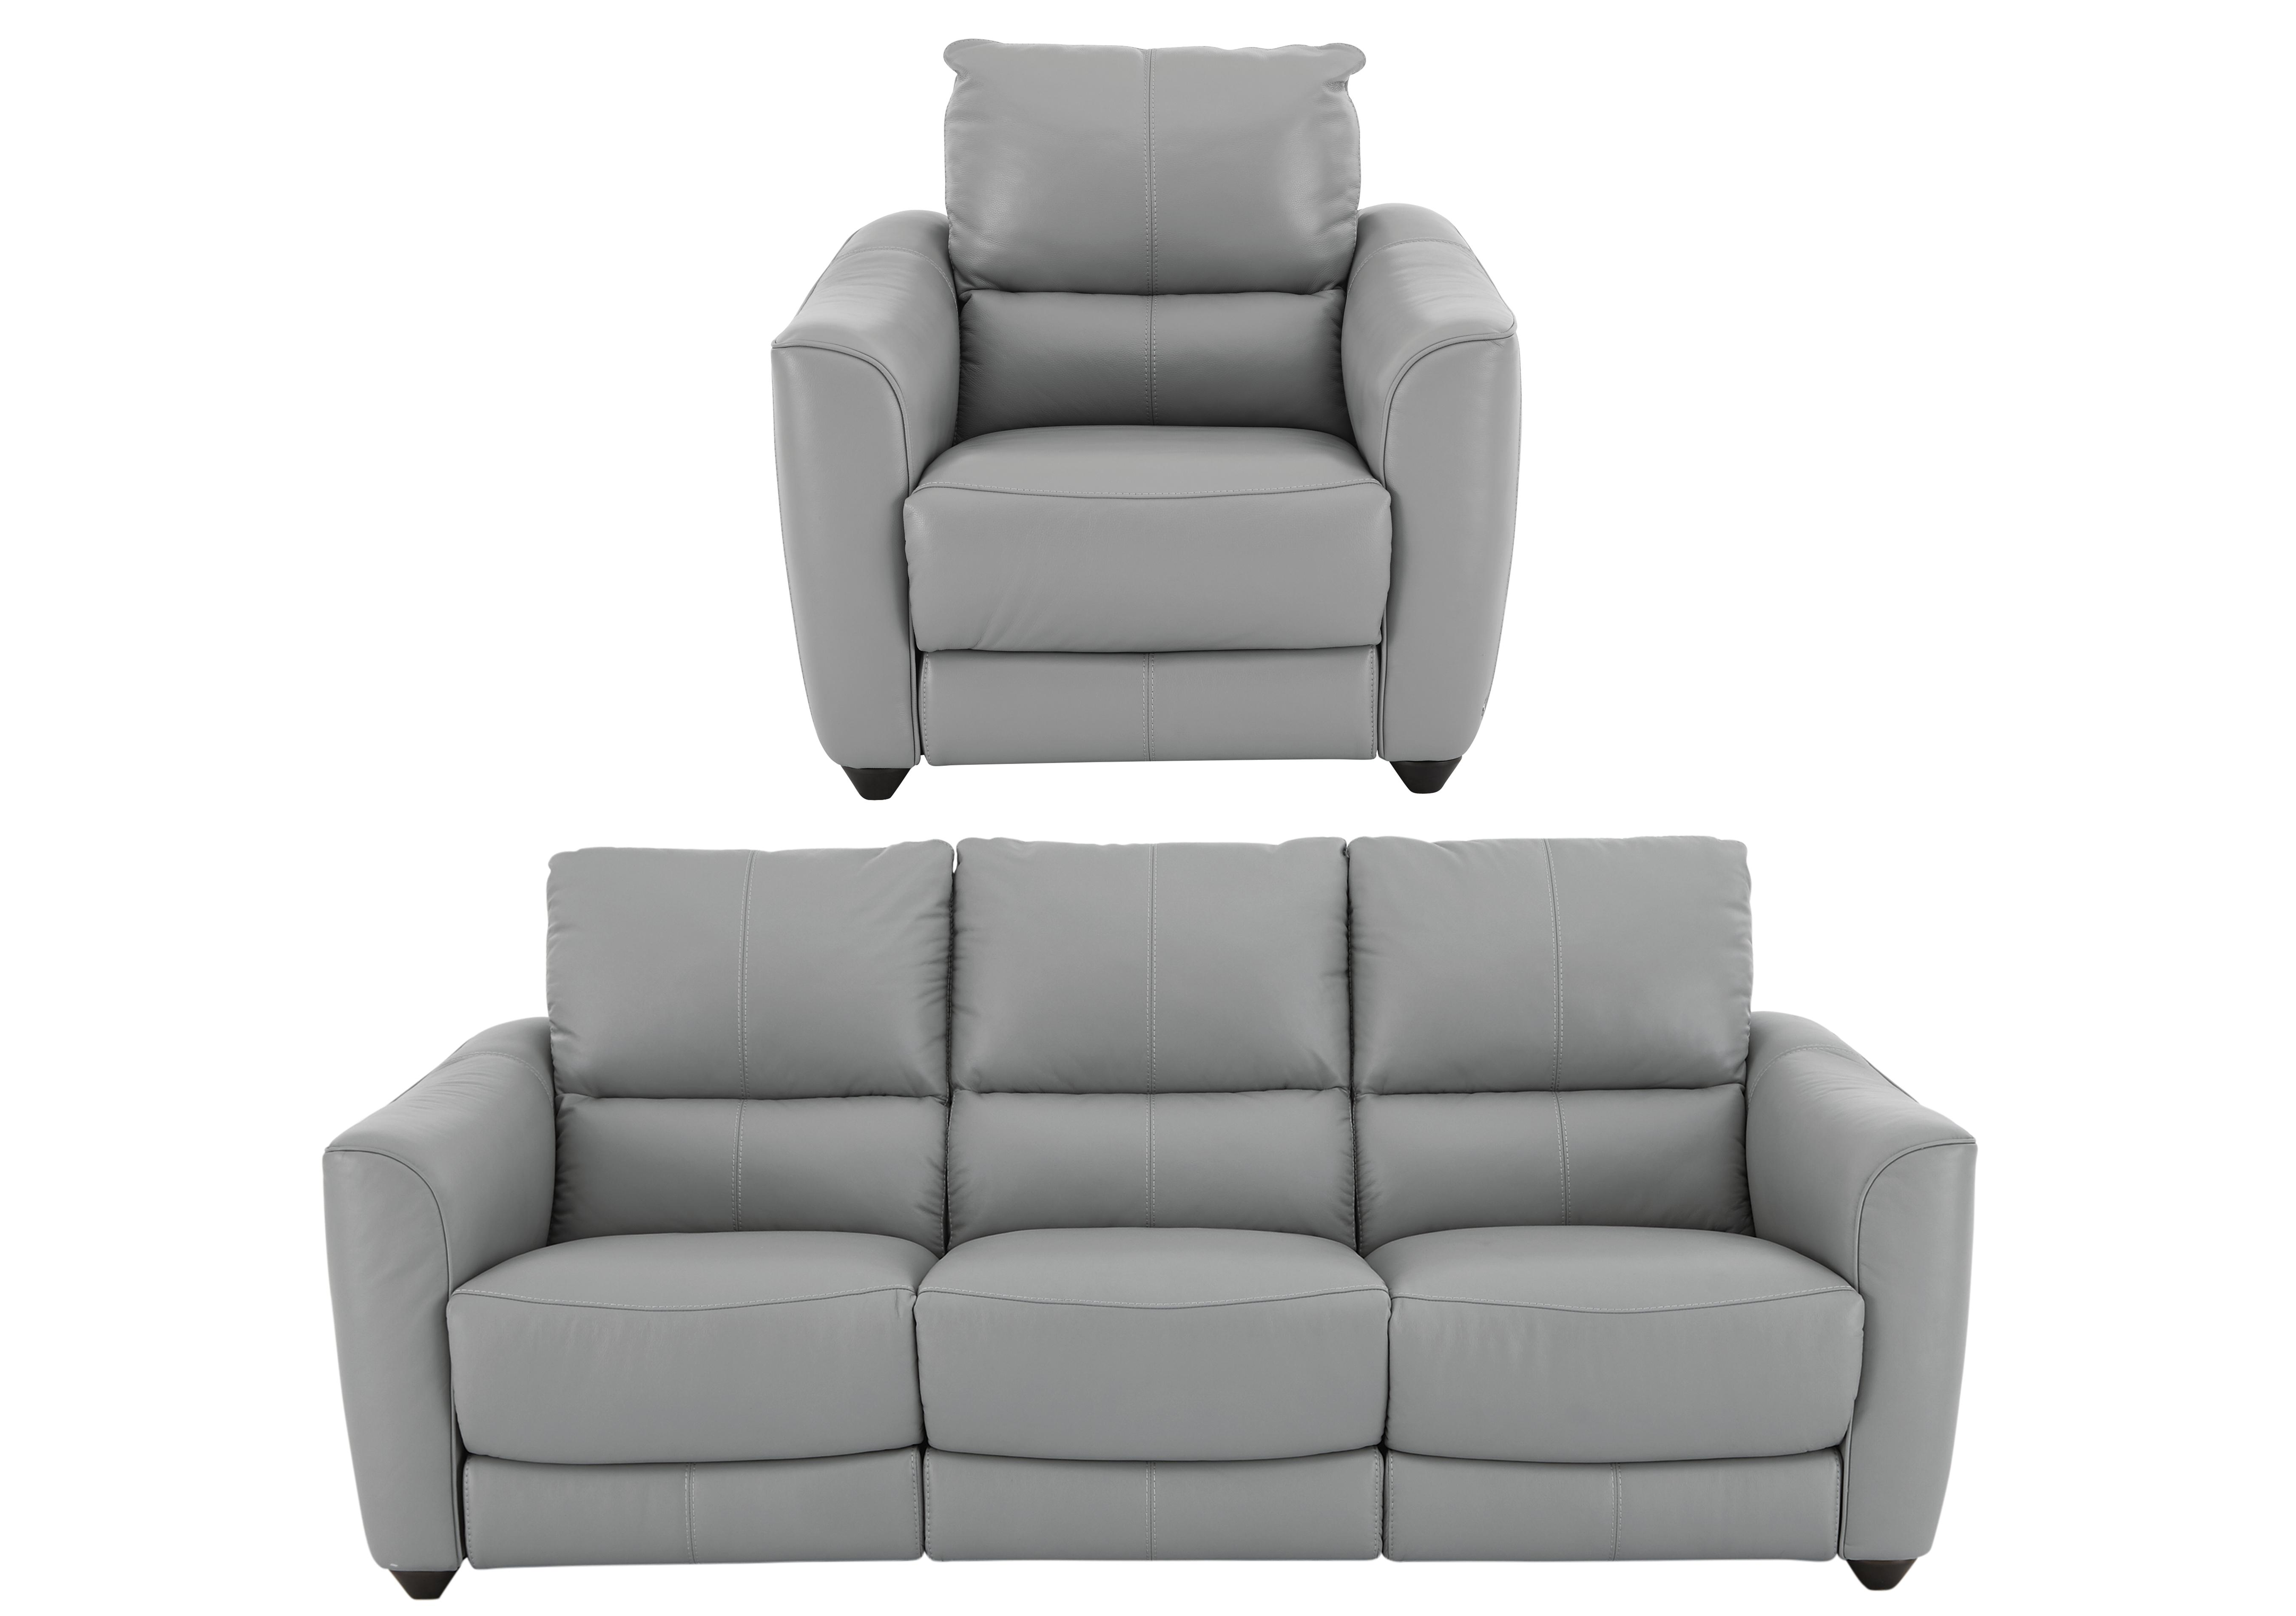 black 3 seater sofa and cuddle chair furniture set pictures trilogy leather power recliner armchair world of village